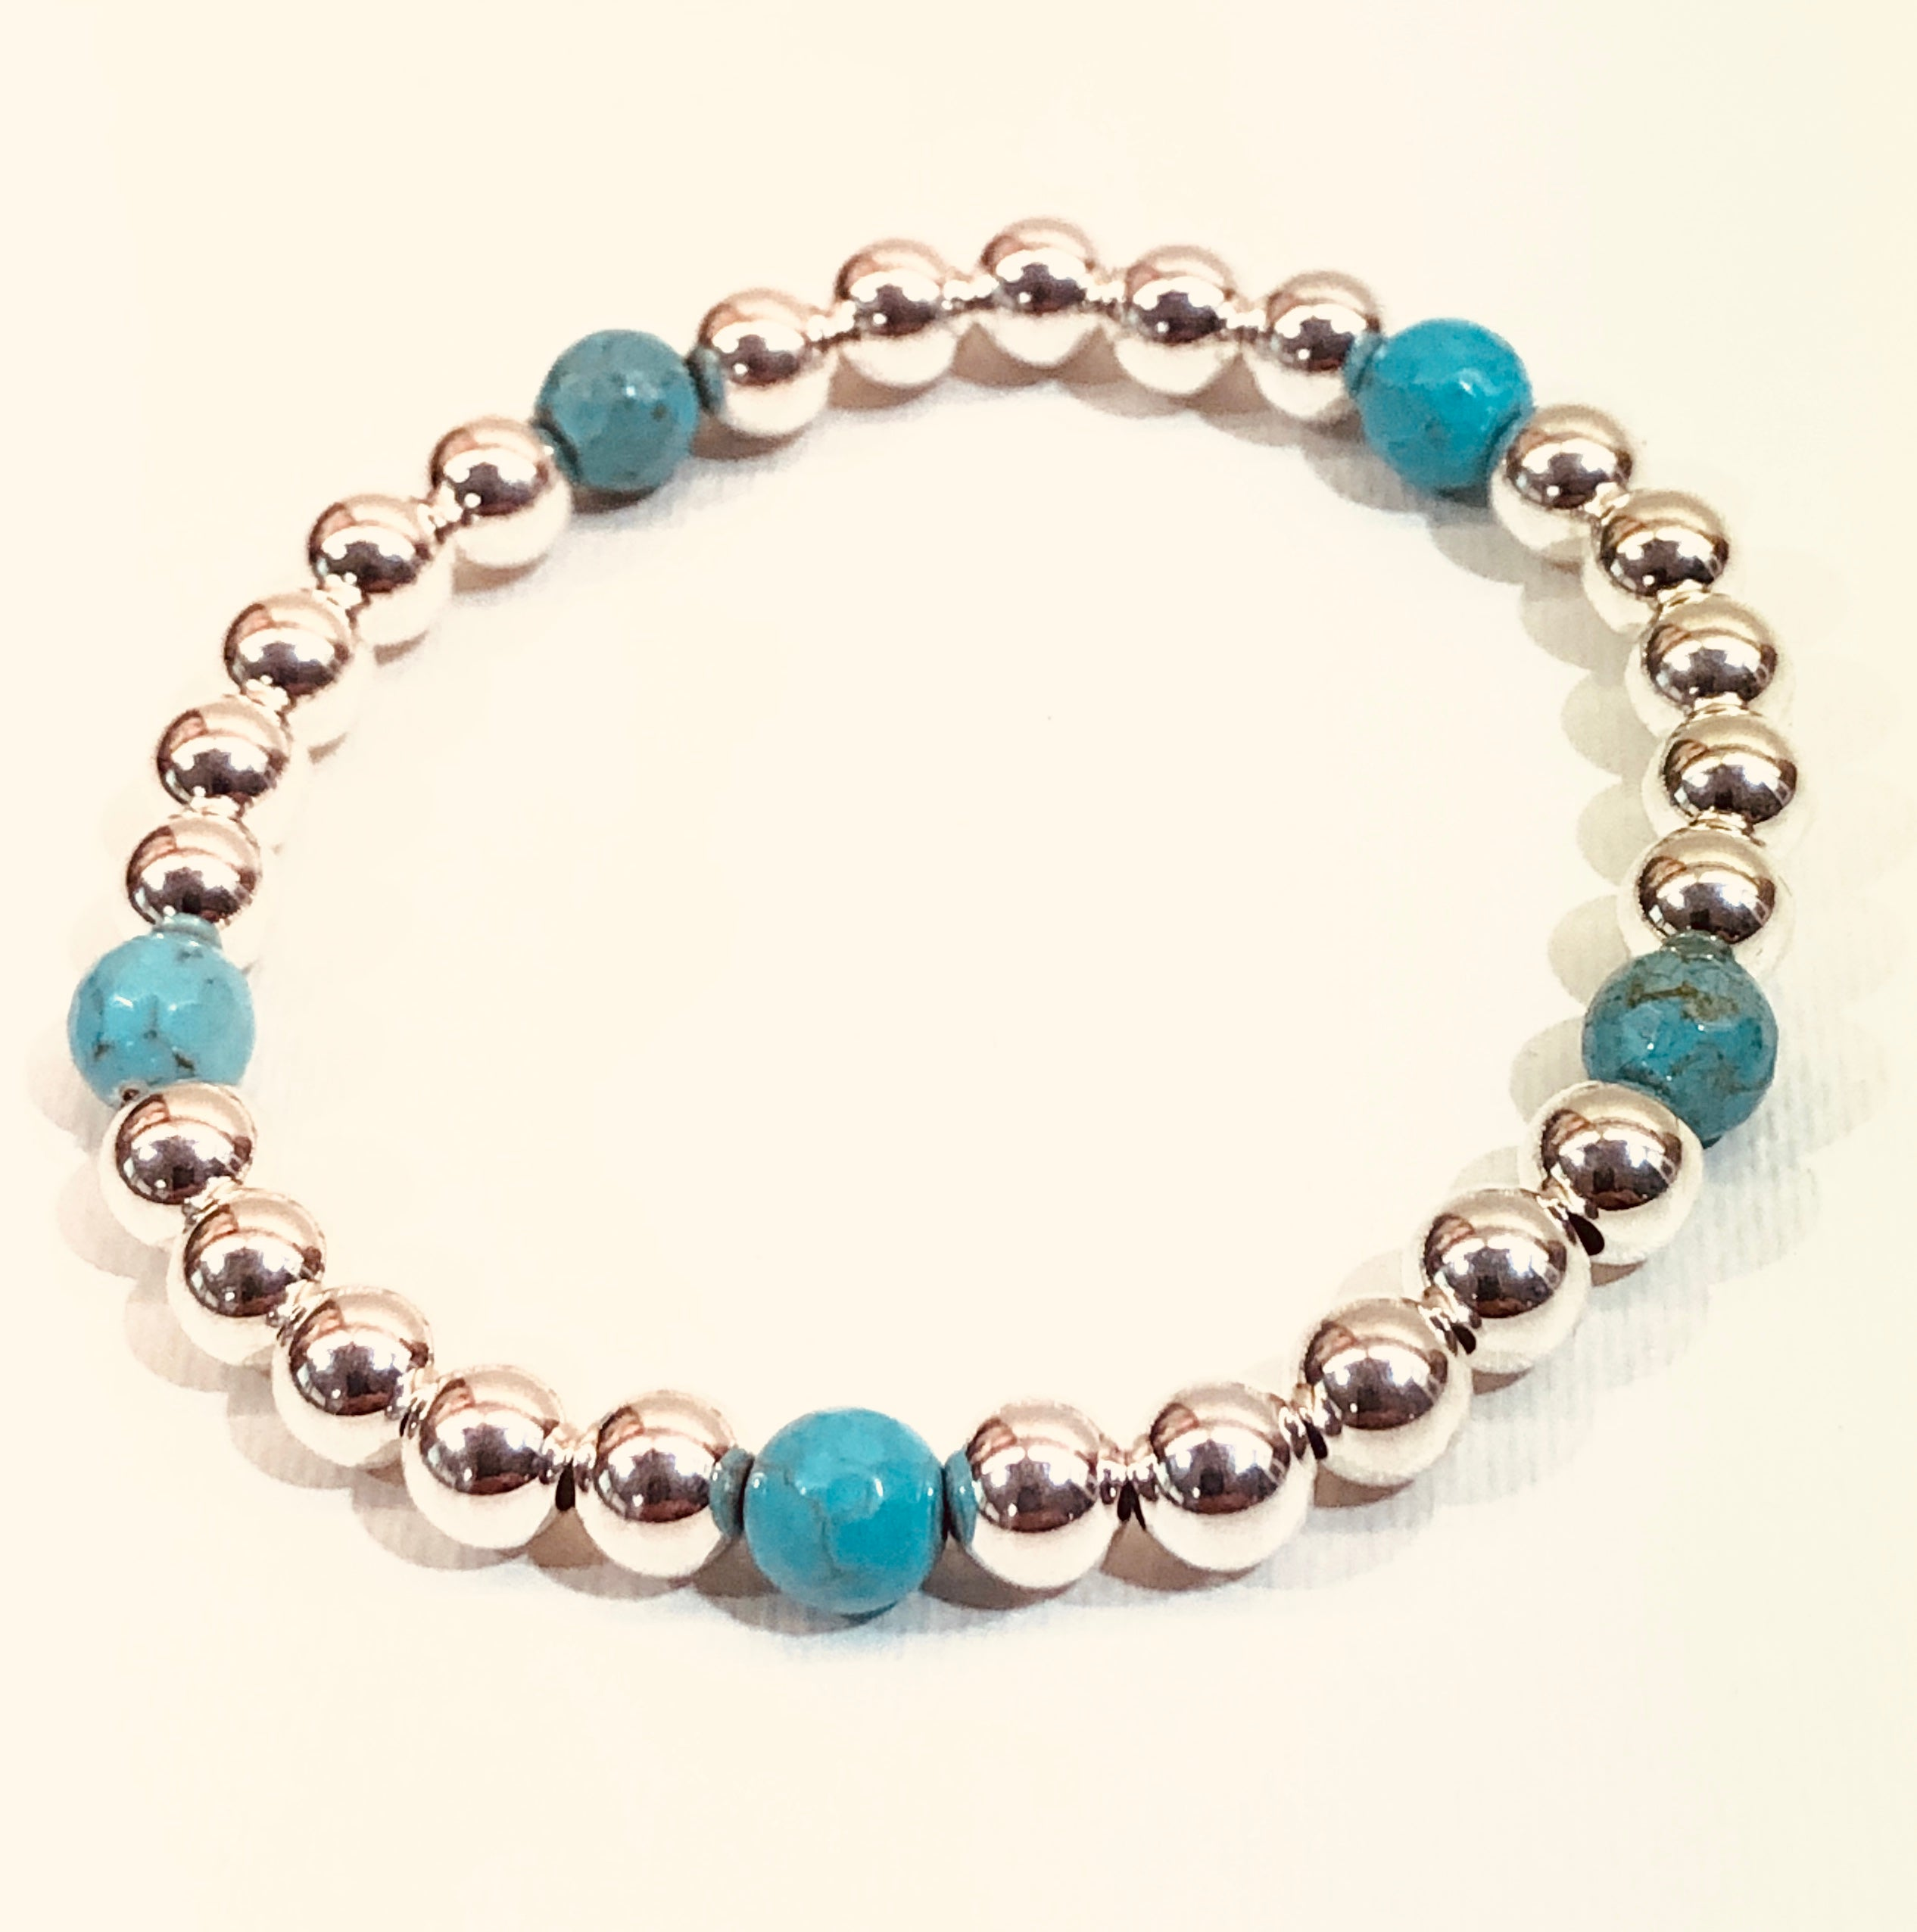 6mm Sterling Silver Bead Bracelet with 5 Turquoise Blue Beads